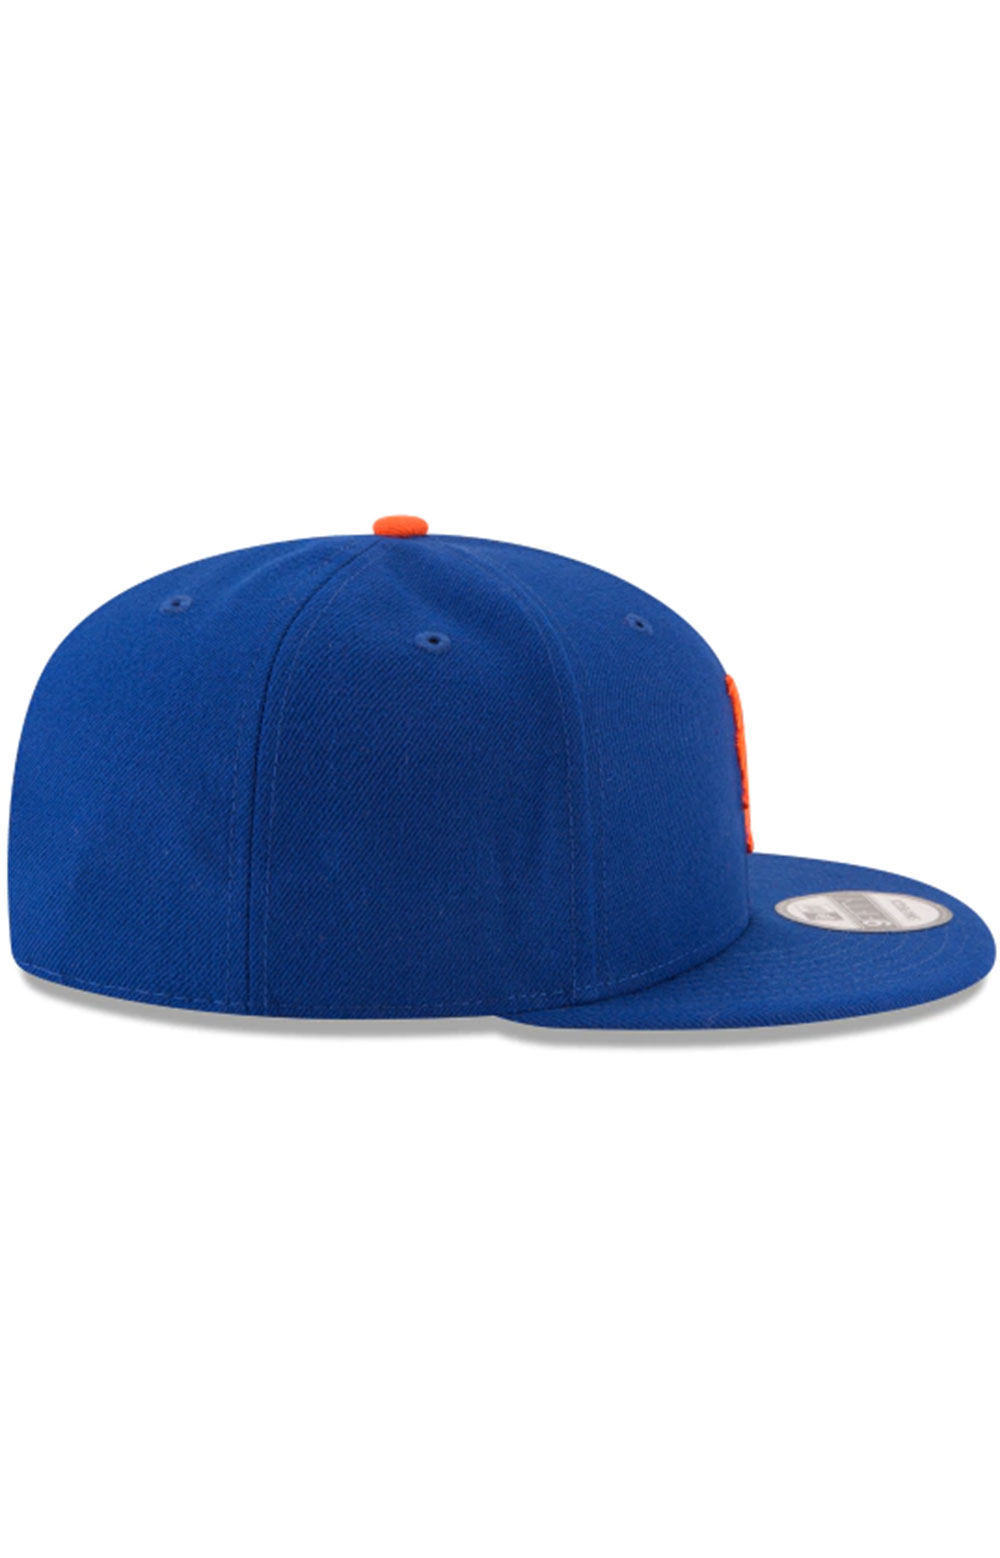 New York Mets Team Color Basic 9Fifty Snap-Back Hat  2